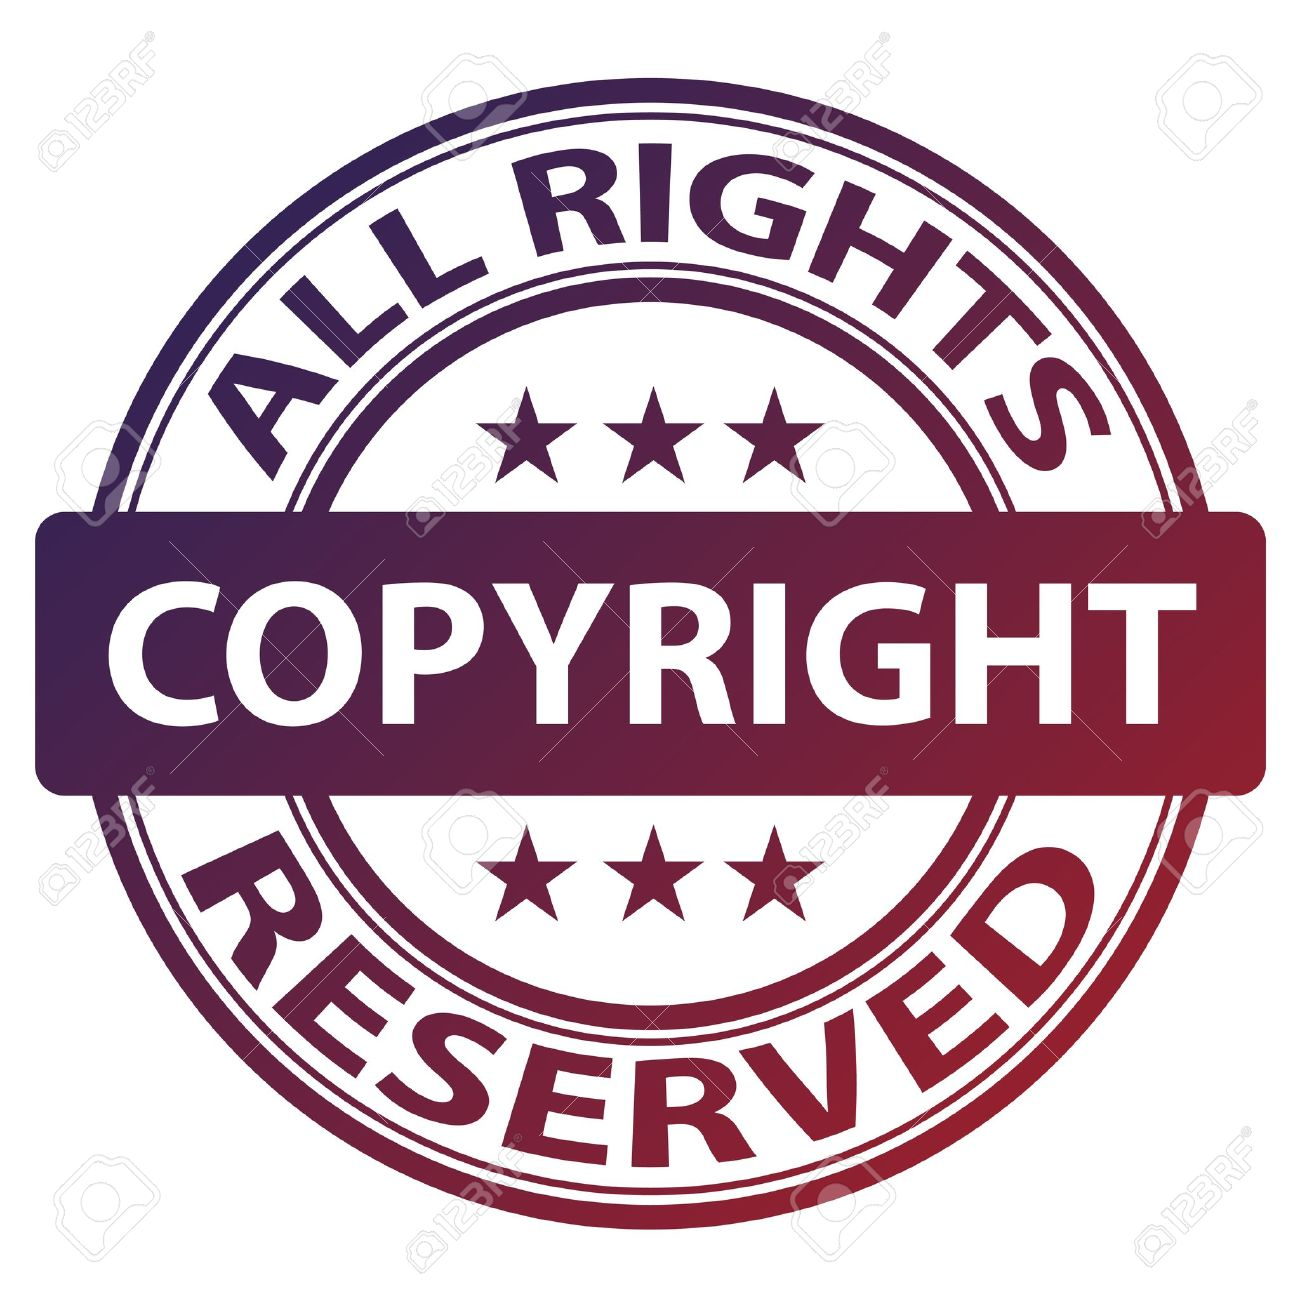 11504080-vector-pure-copyright-stamp-Stock-Vector-symbol